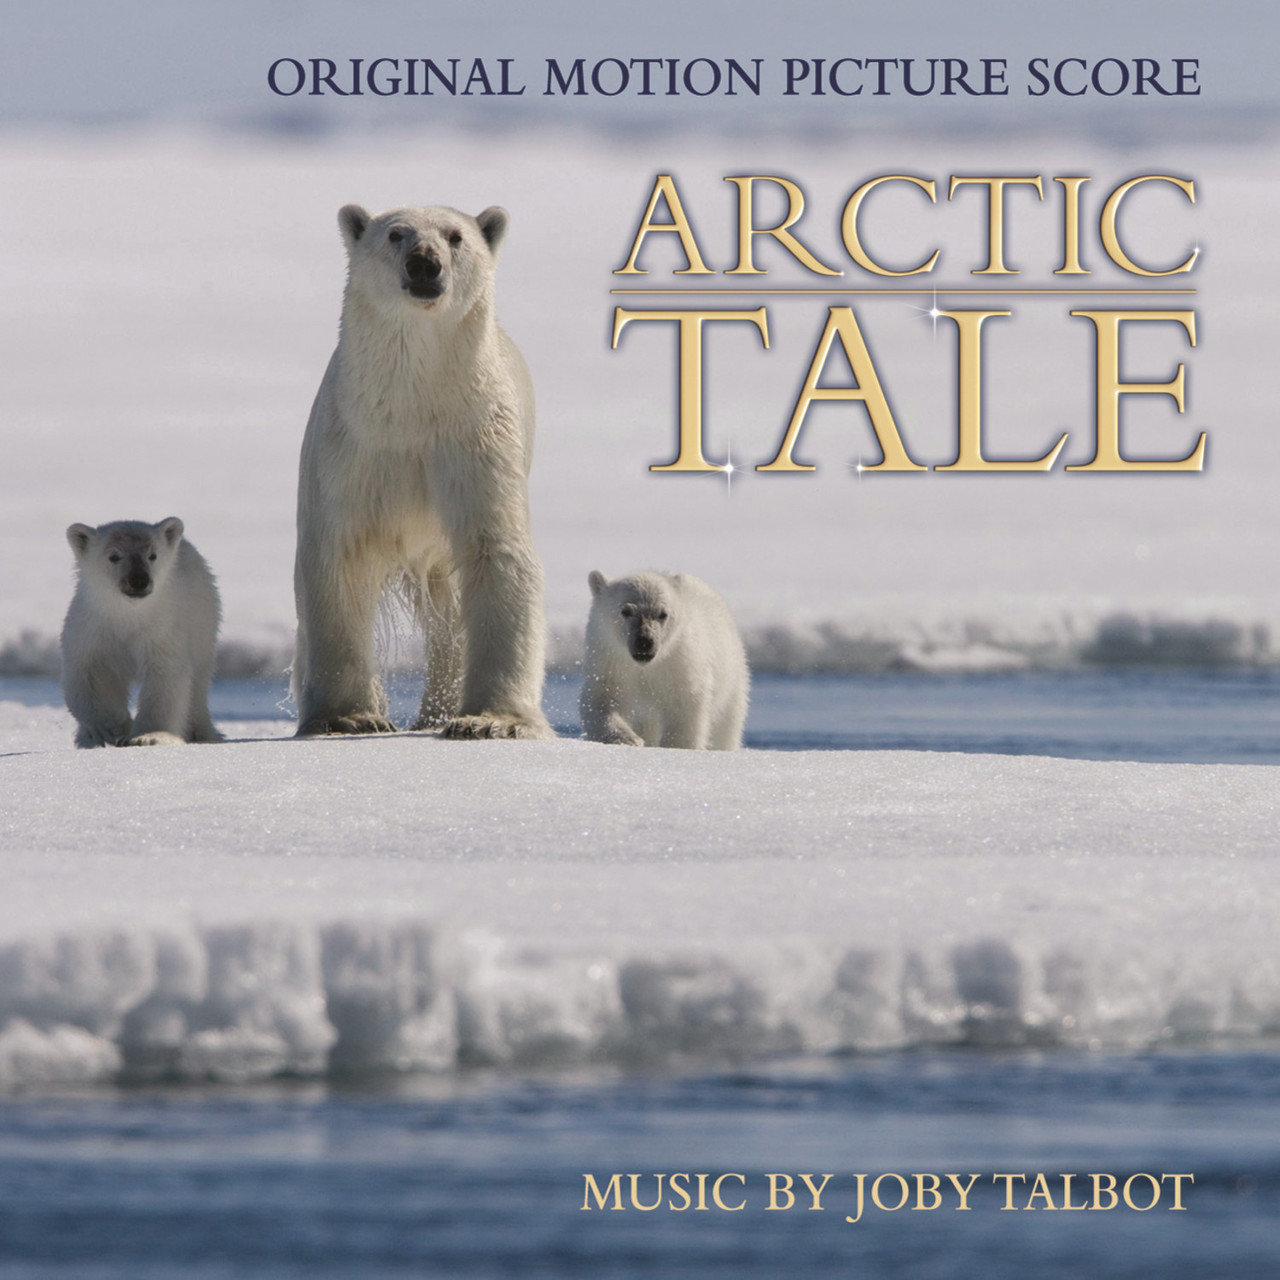 Arctic Tale Original Motion Picture Score